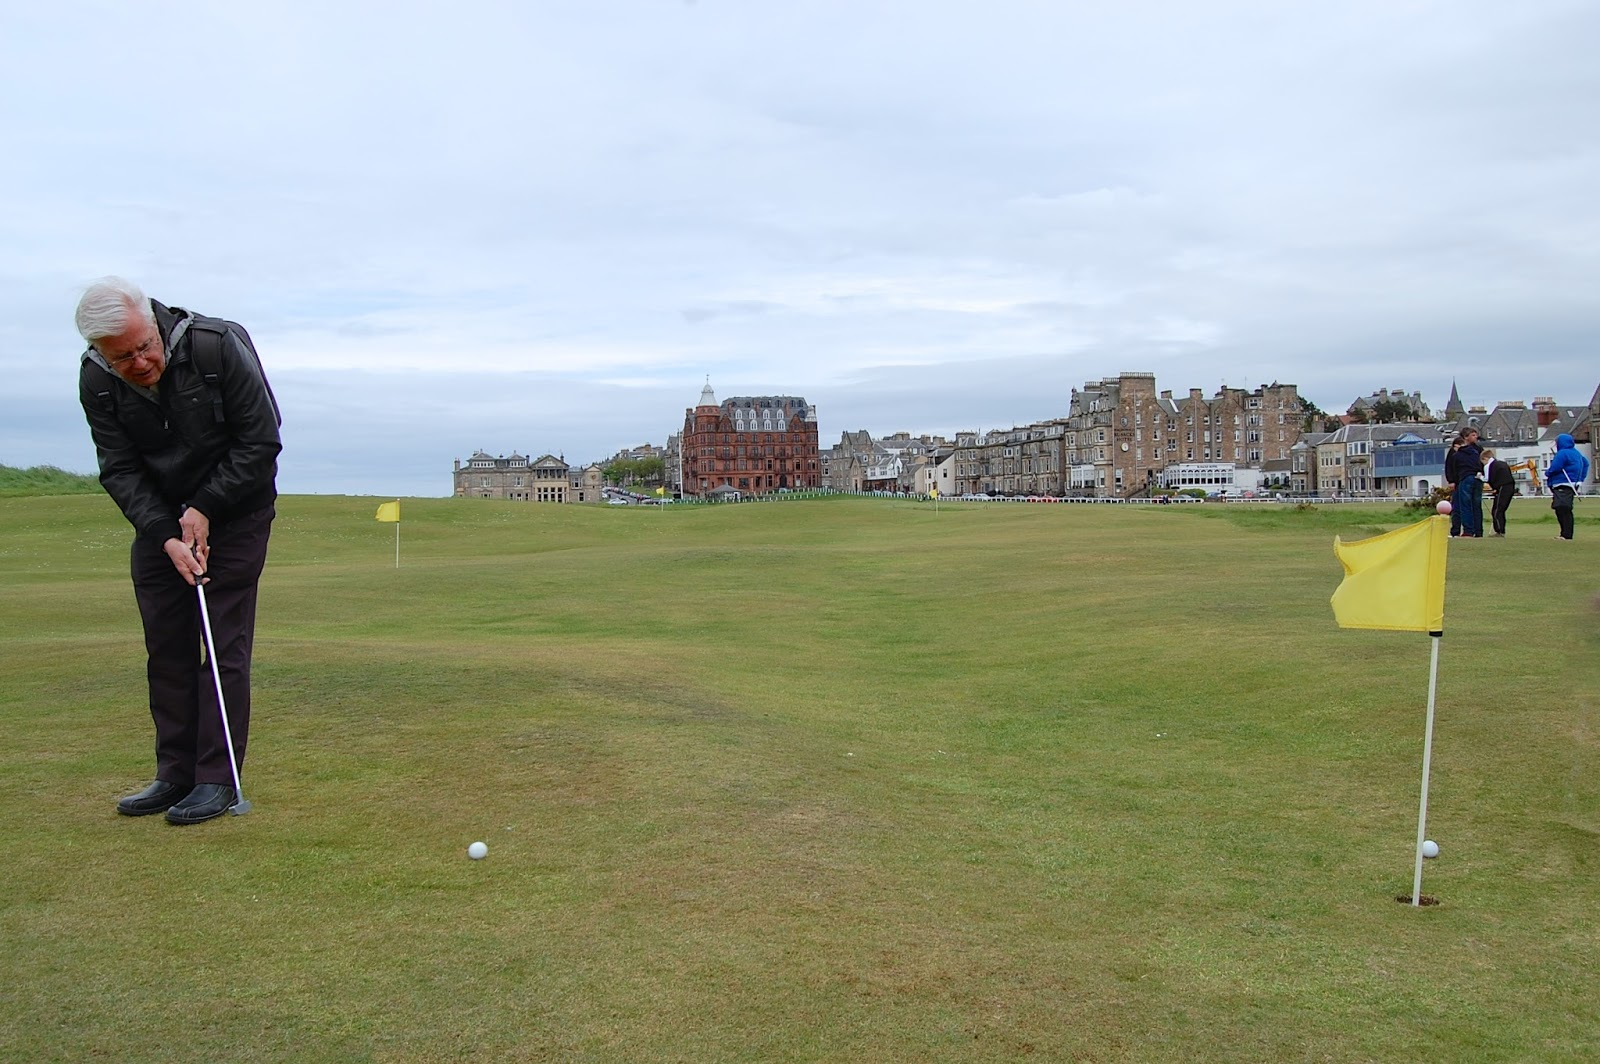 Playing mini-golf on the Himalayas in St. Andrews